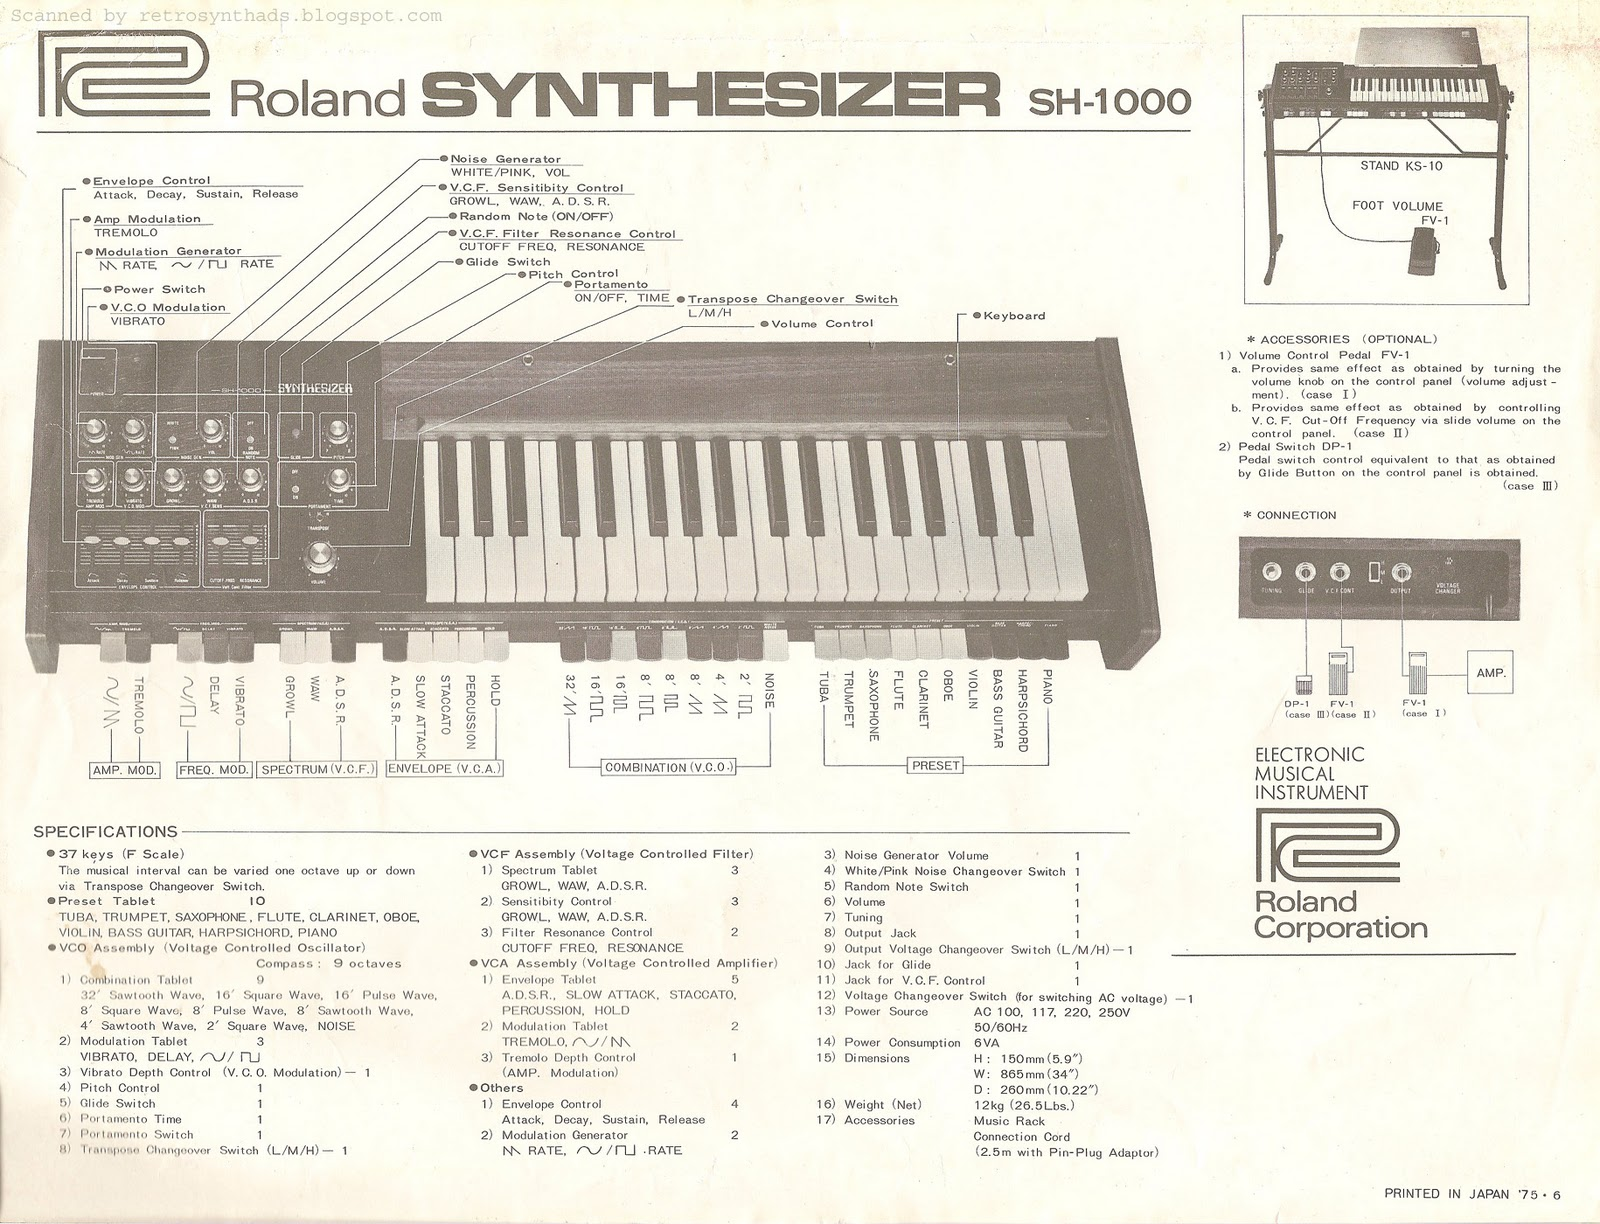 """Retro Synth Ads: Roland SH-1000 """"For those far-out sounds"""" brochure, 1975"""